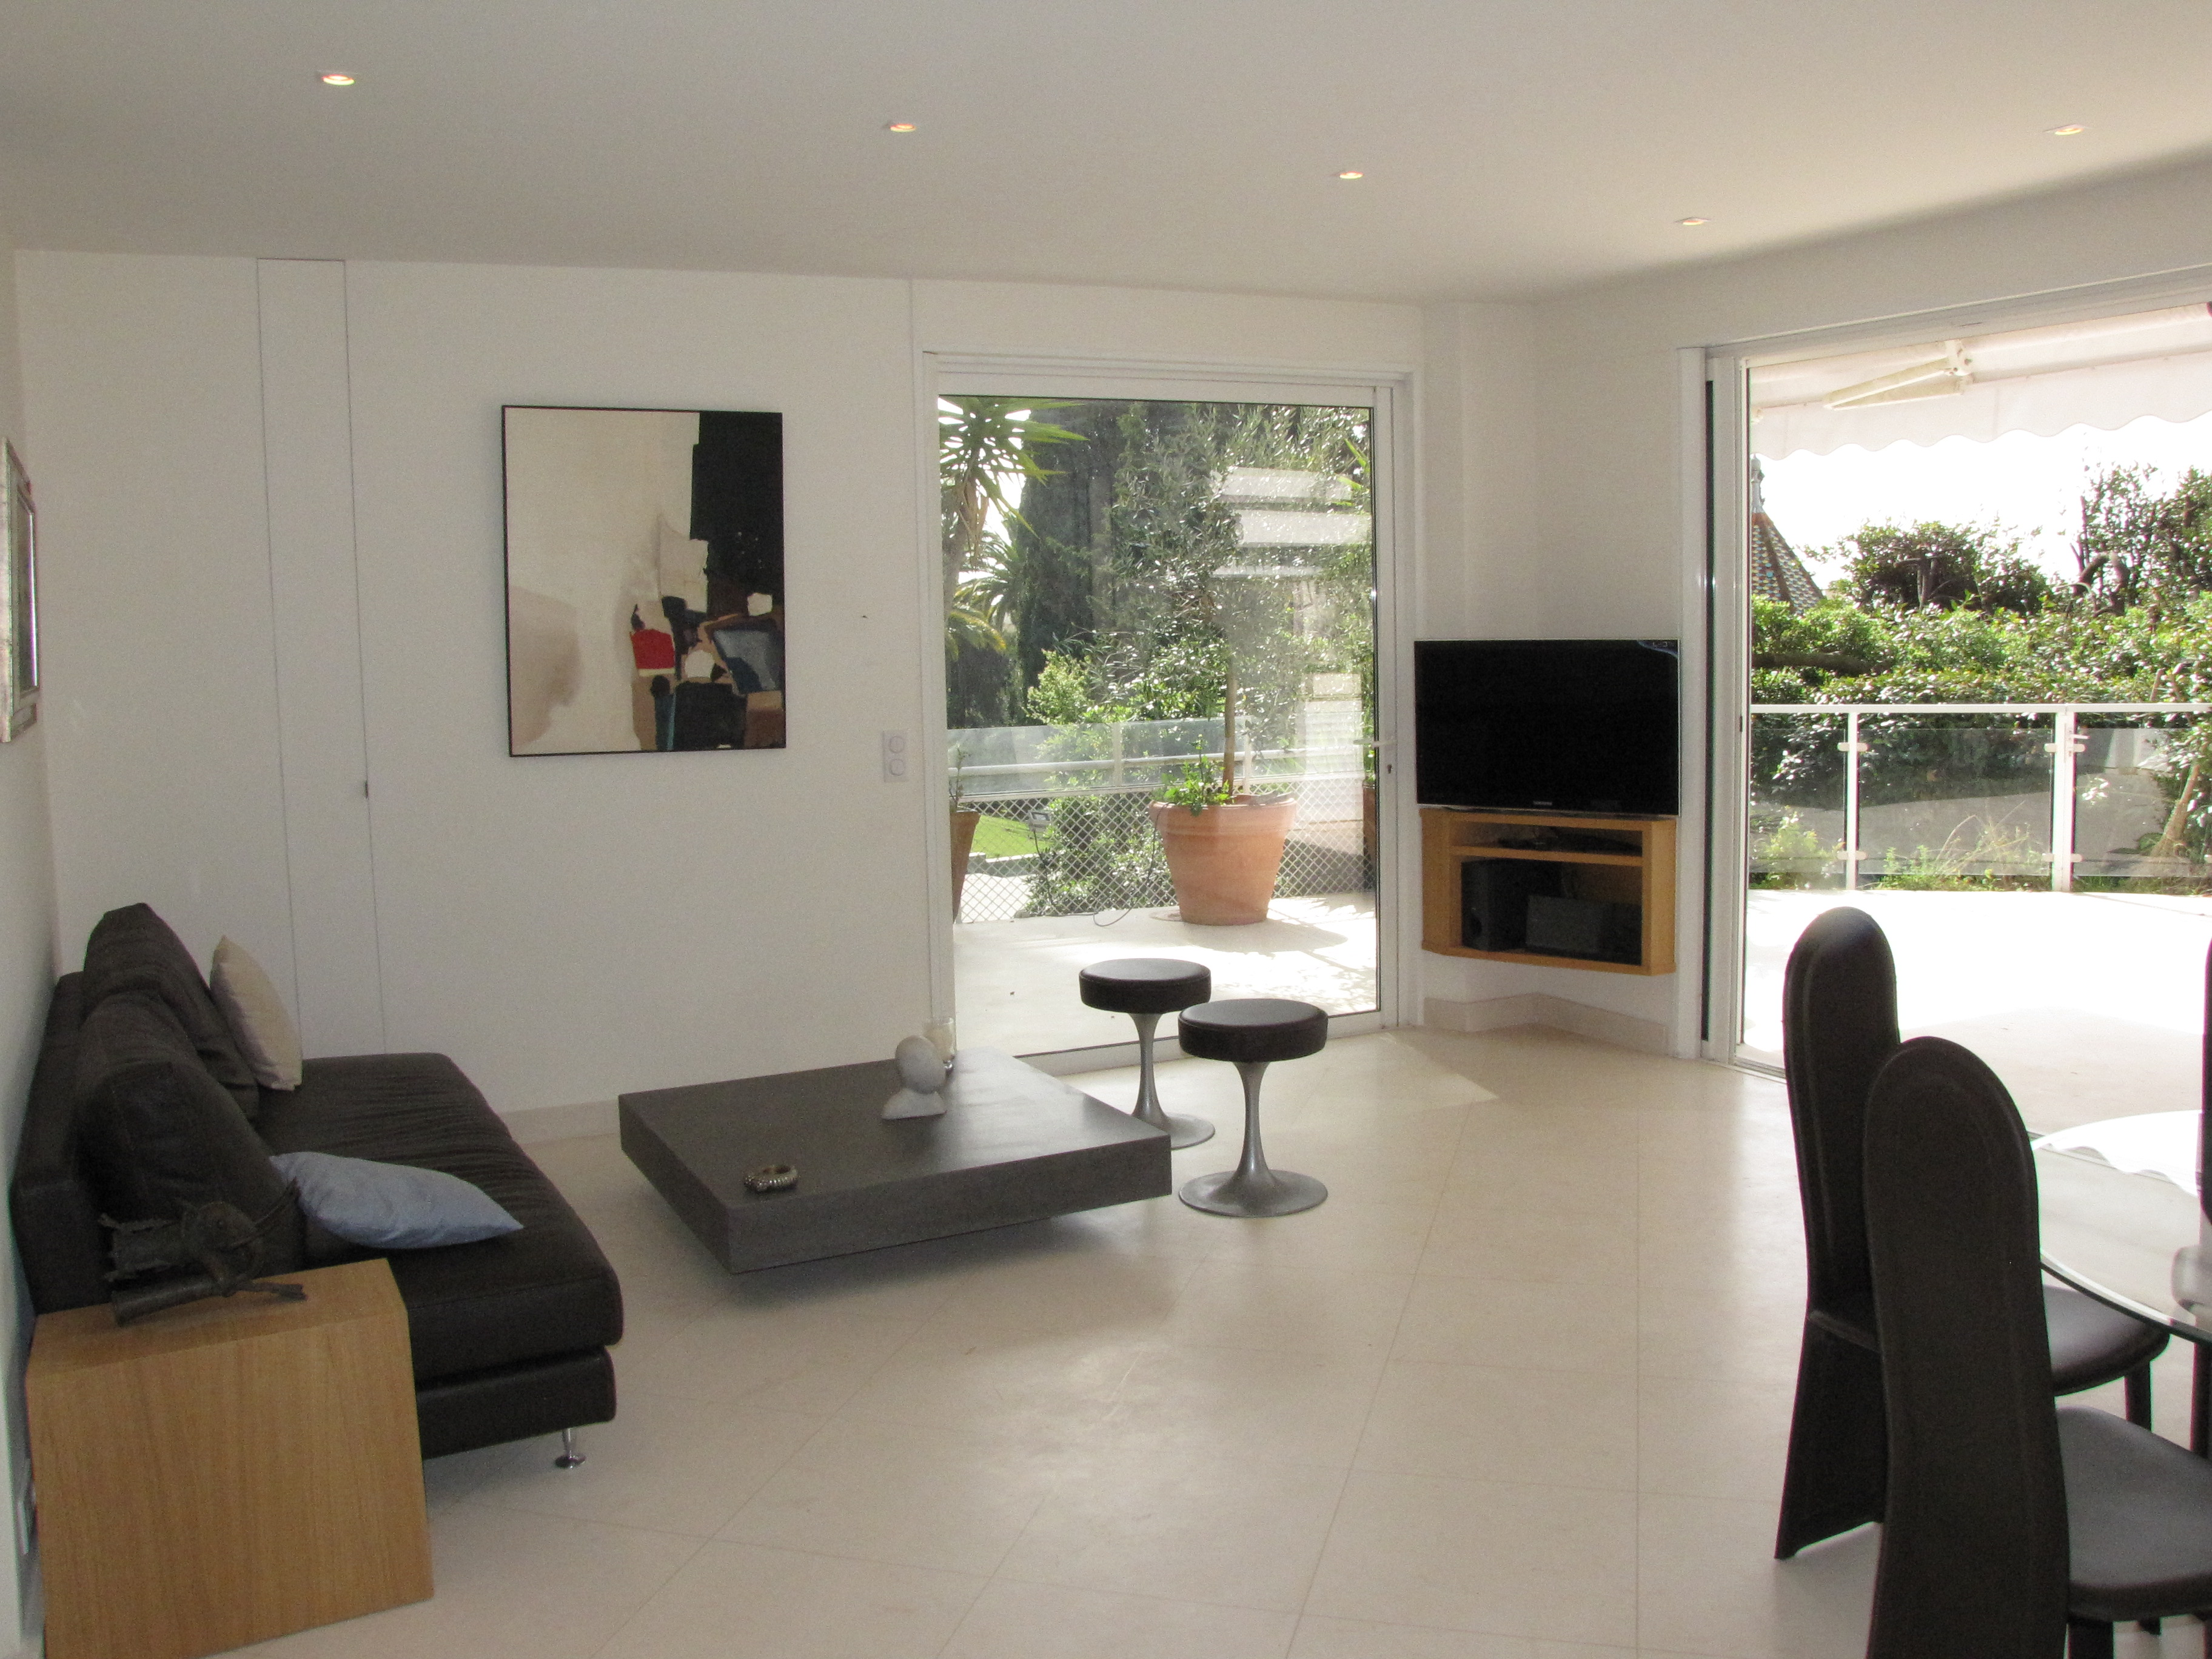 Agence immobili re cannes vente achat appartement for Vente appartement agence